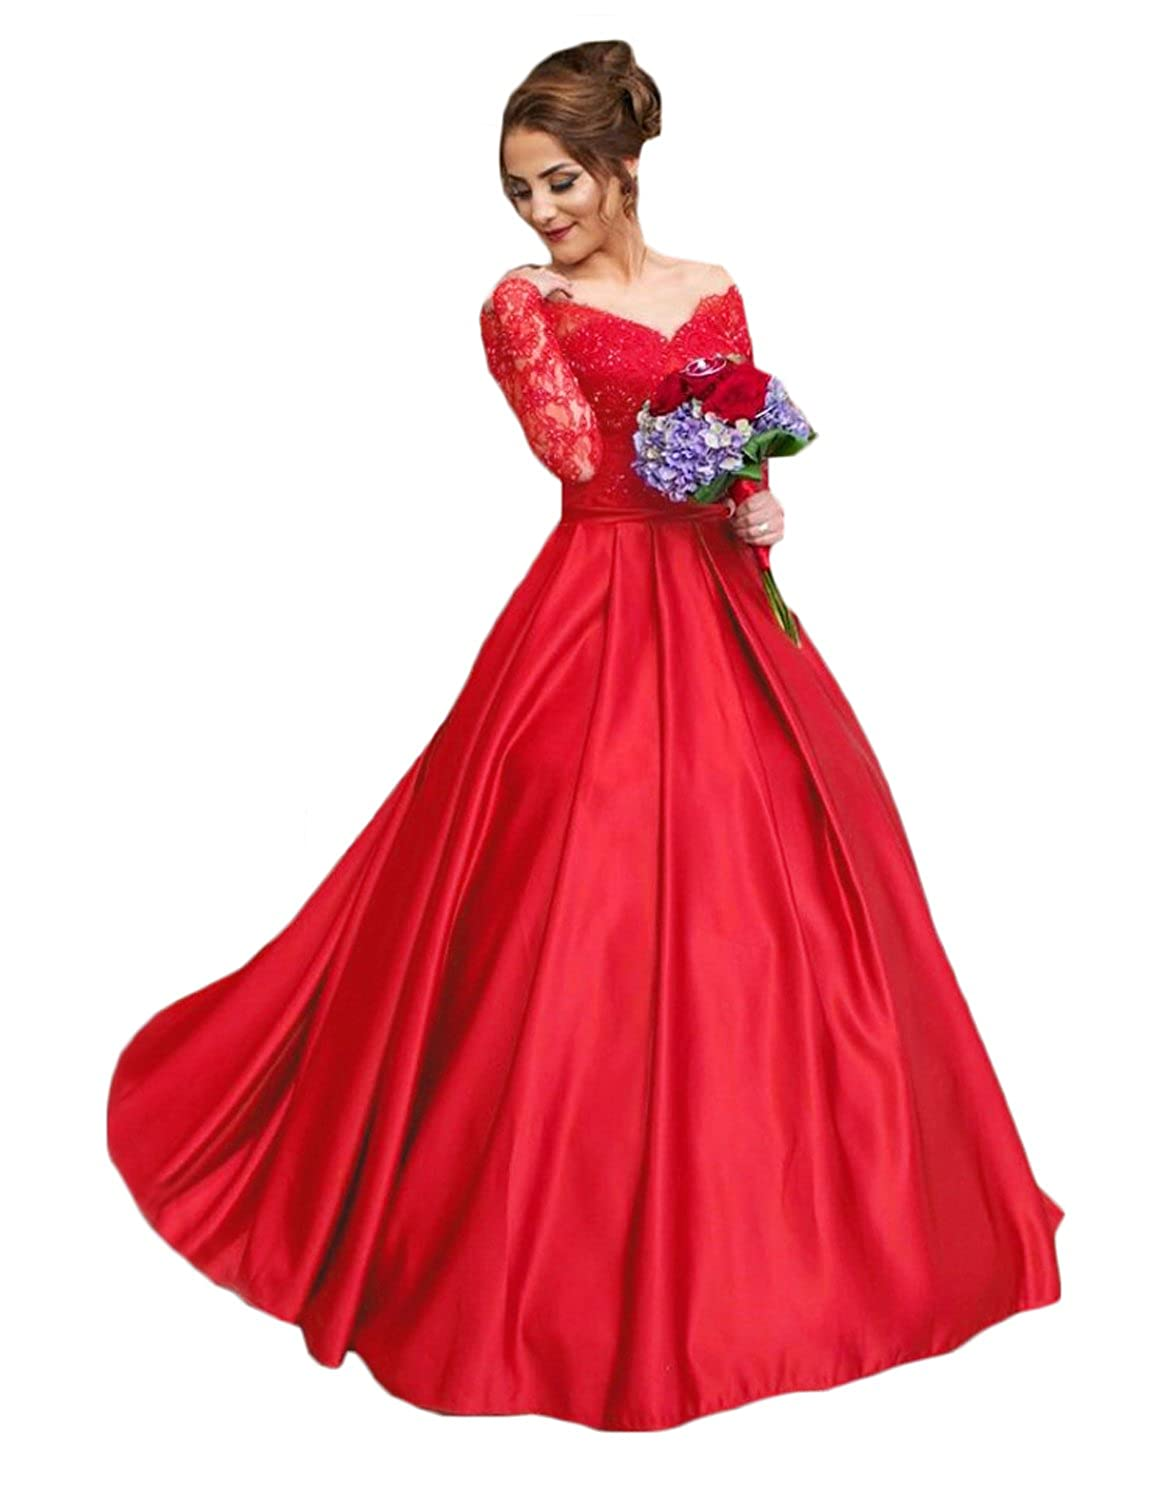 bcf1528fc6 CIRCLEWLD Off Shoulder Long Sleeve Lace Satin Evening Dresses Ball Gown  Wedding Women's Formal E160